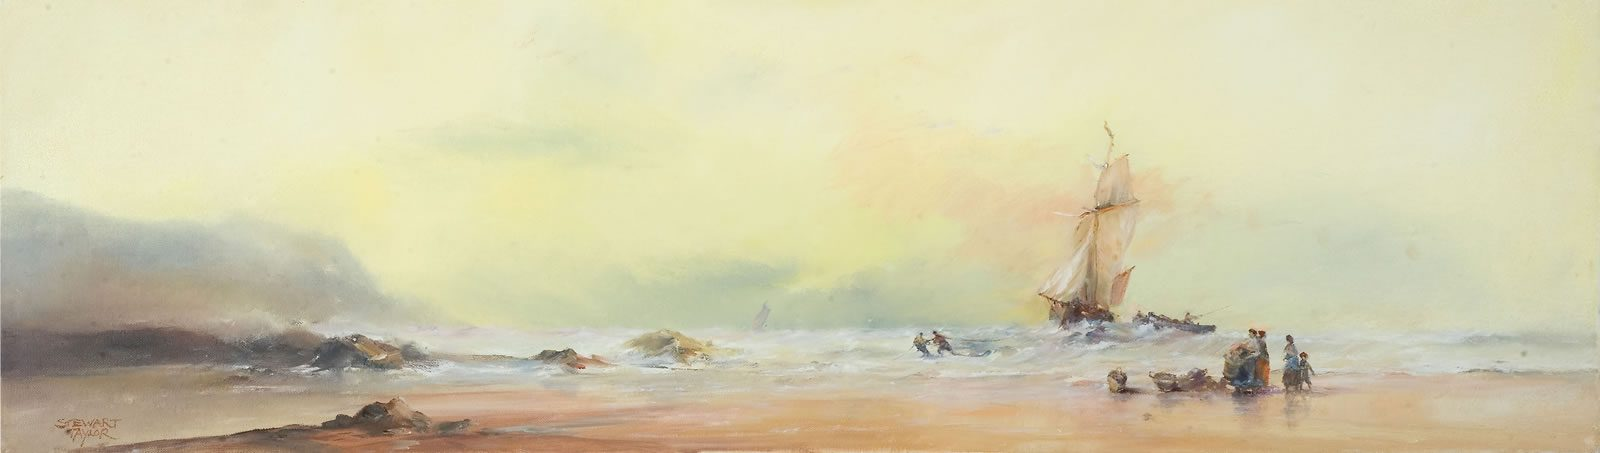 Marine oil painting of a sailing ship in a storm off the Holderness coast